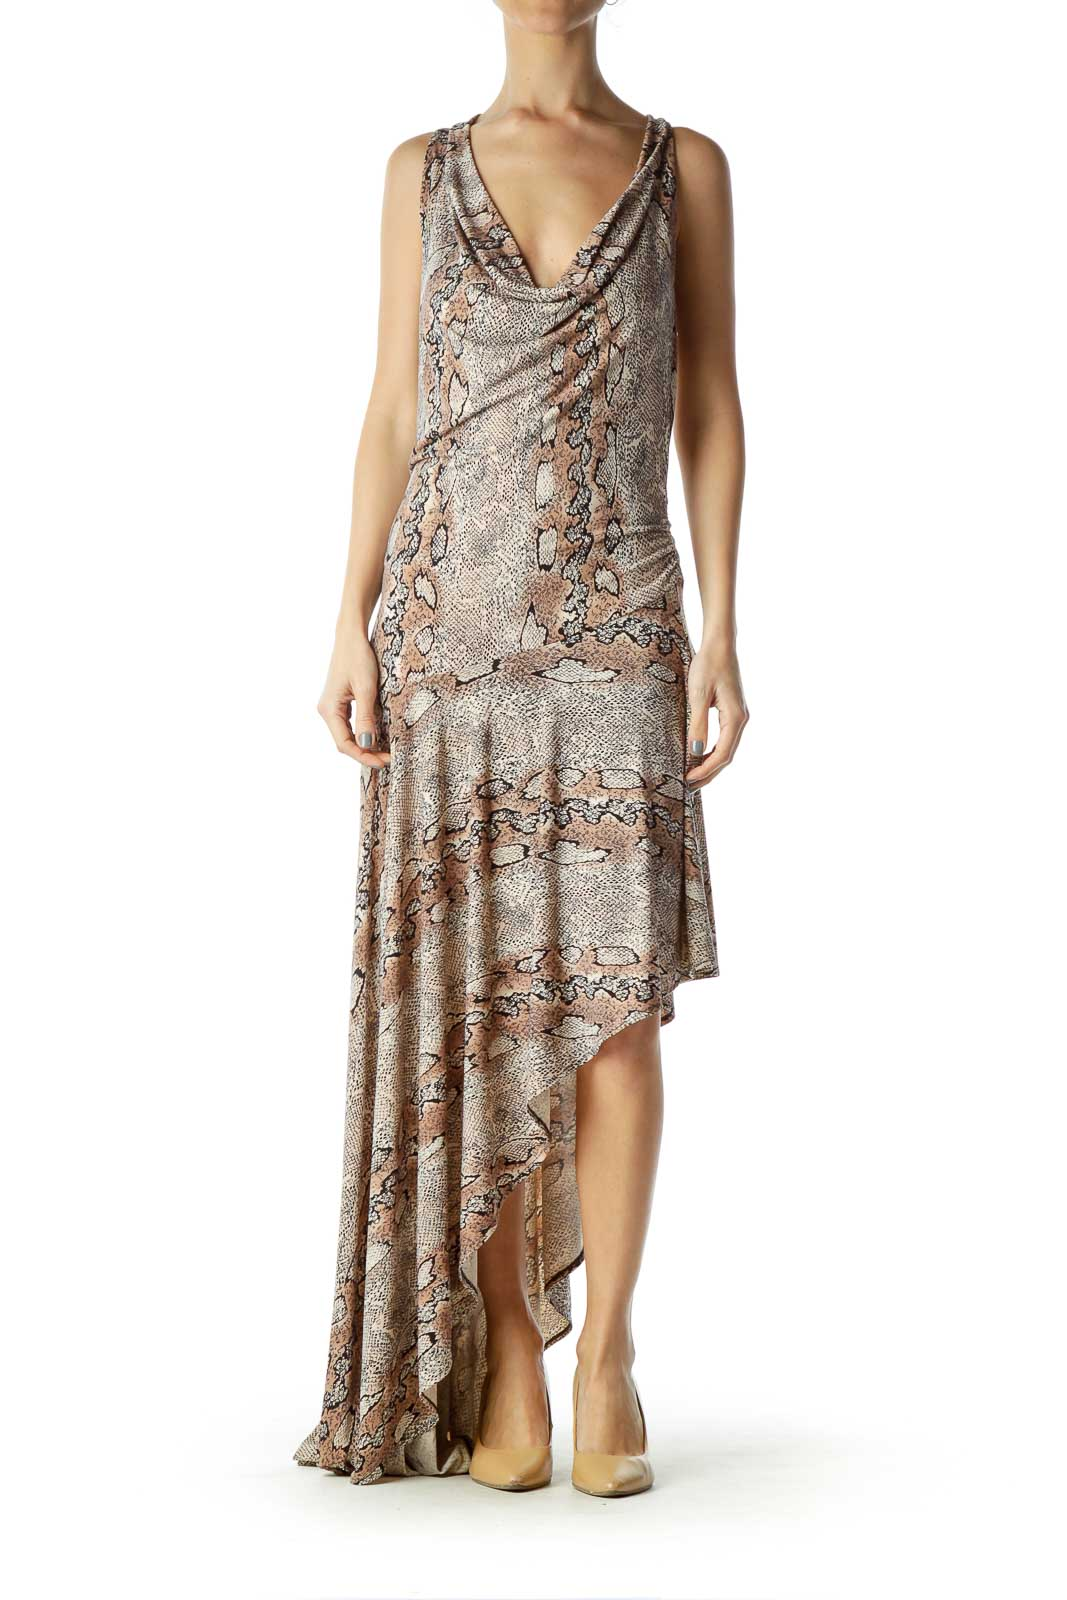 Beige Animal Print Asymmetric Maxi Dress